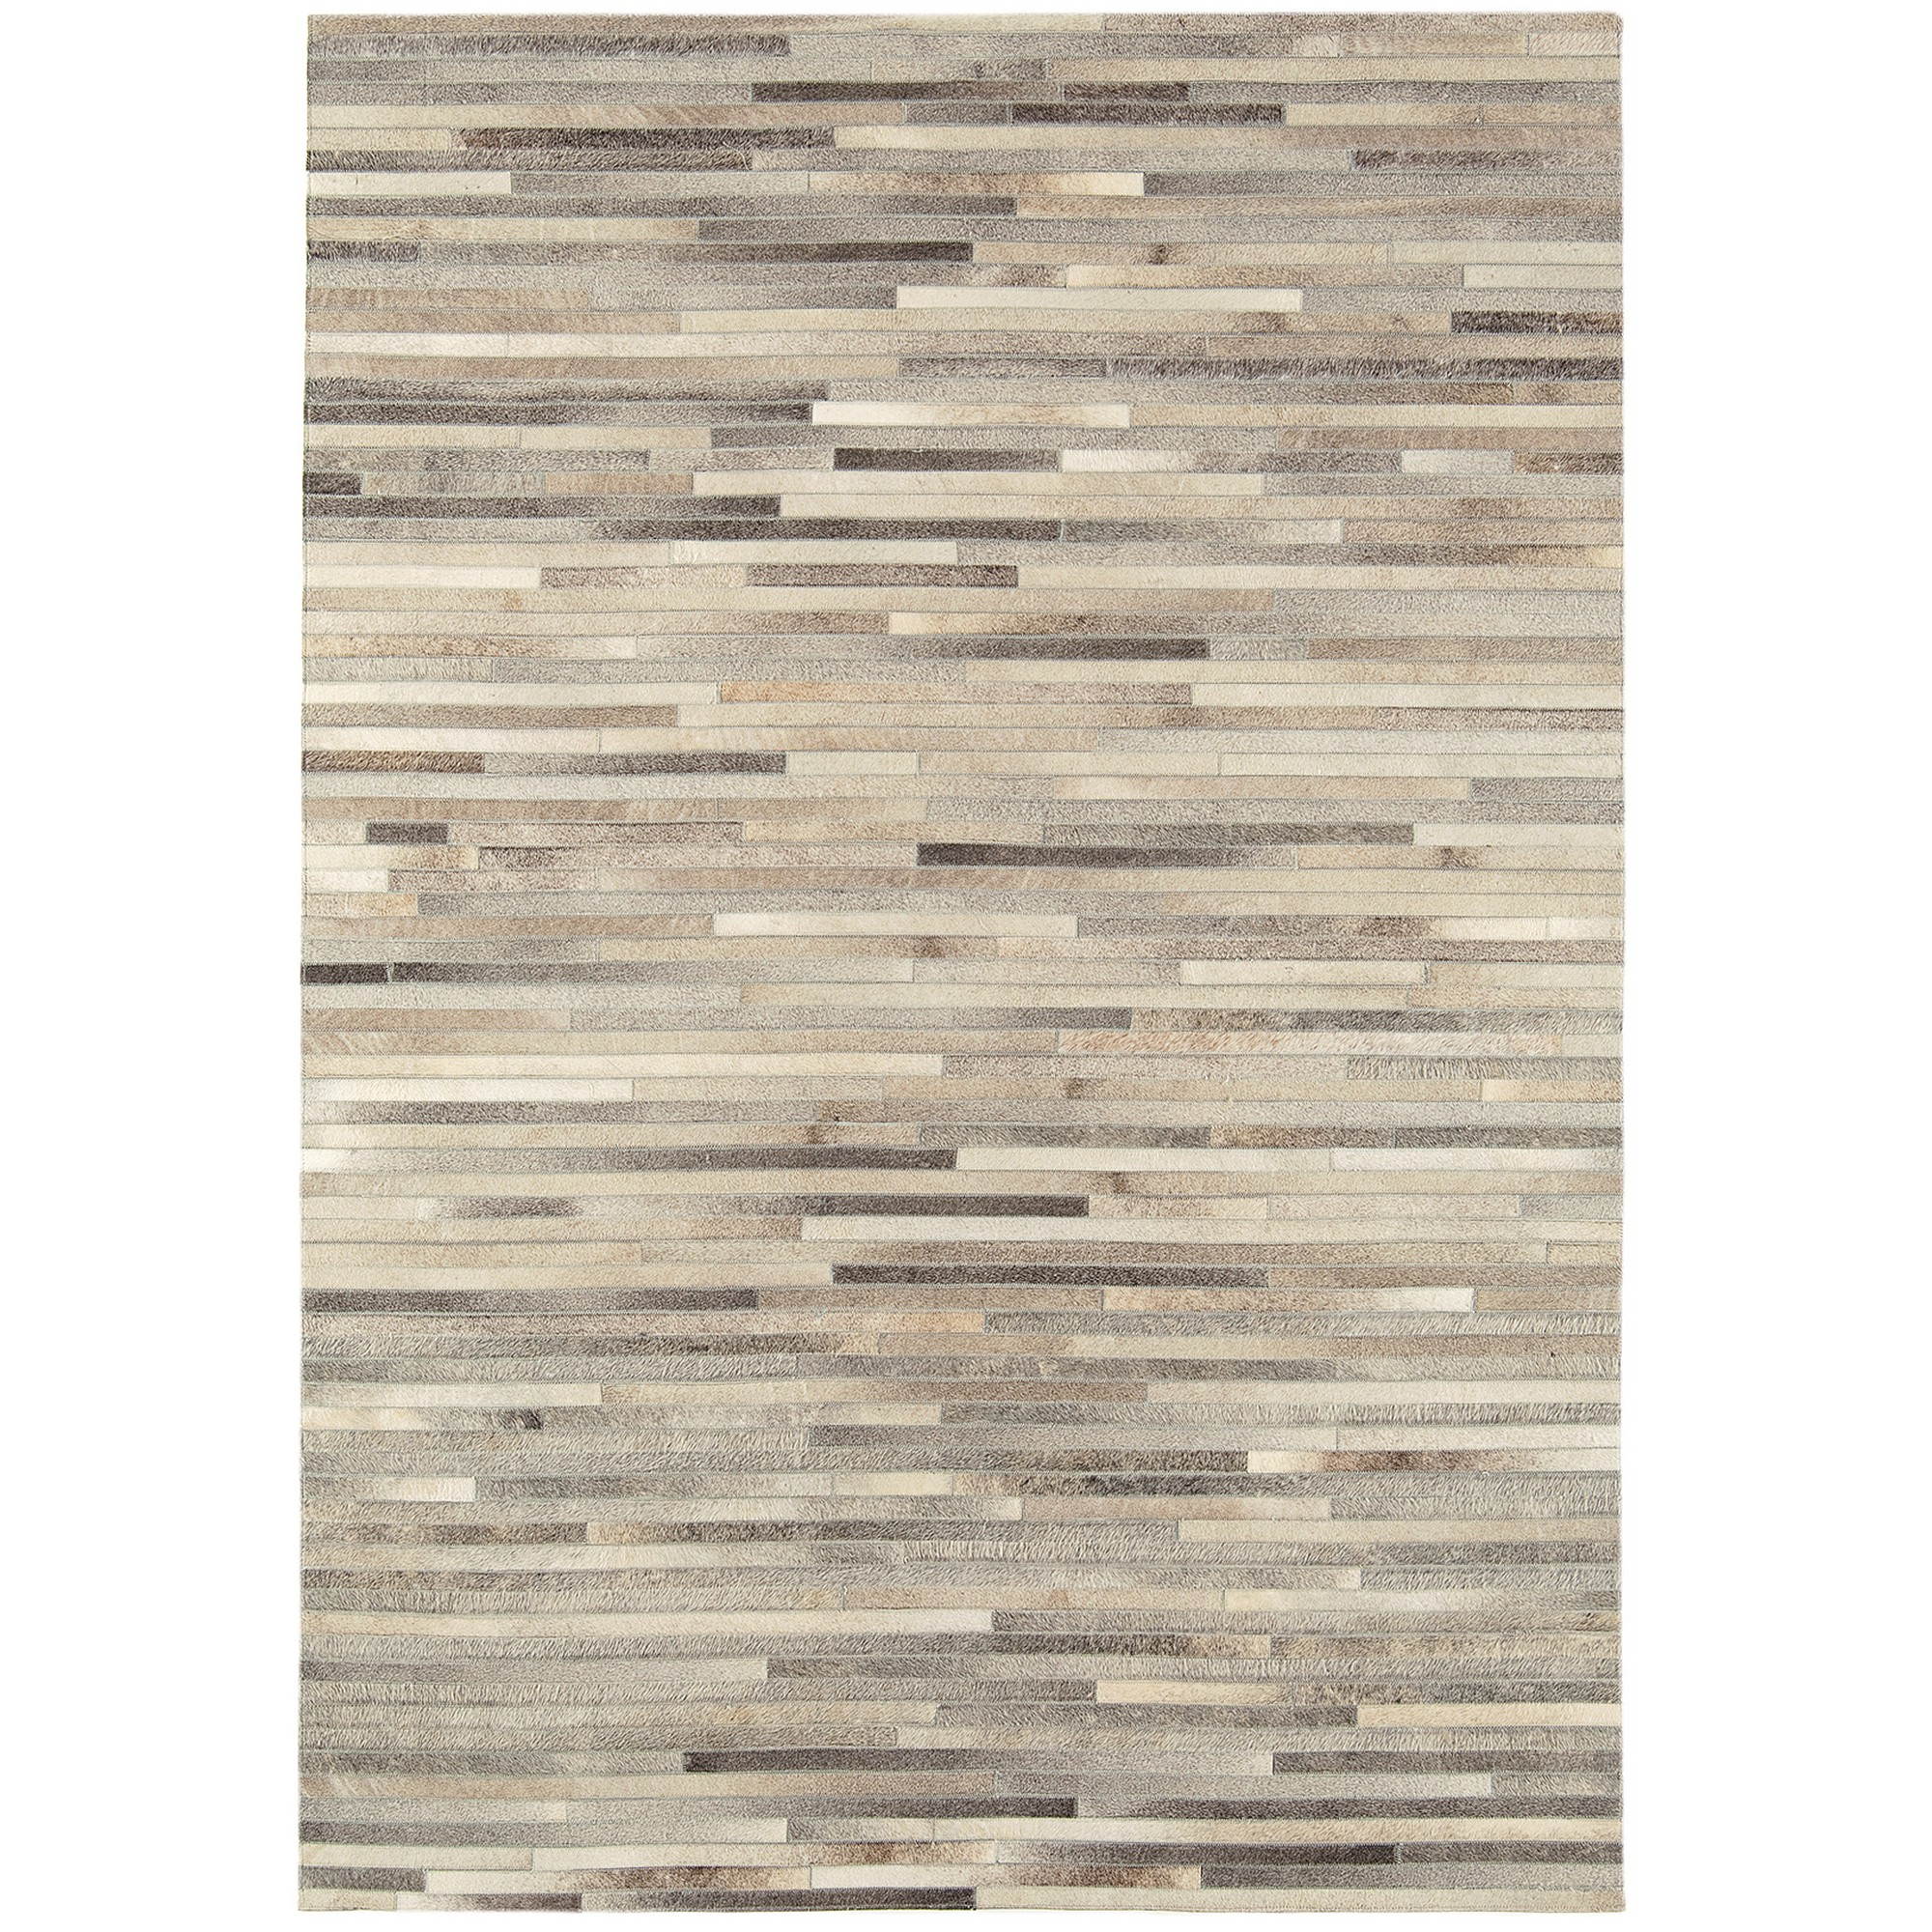 Gaucho Stripe Rugs in Light Grey